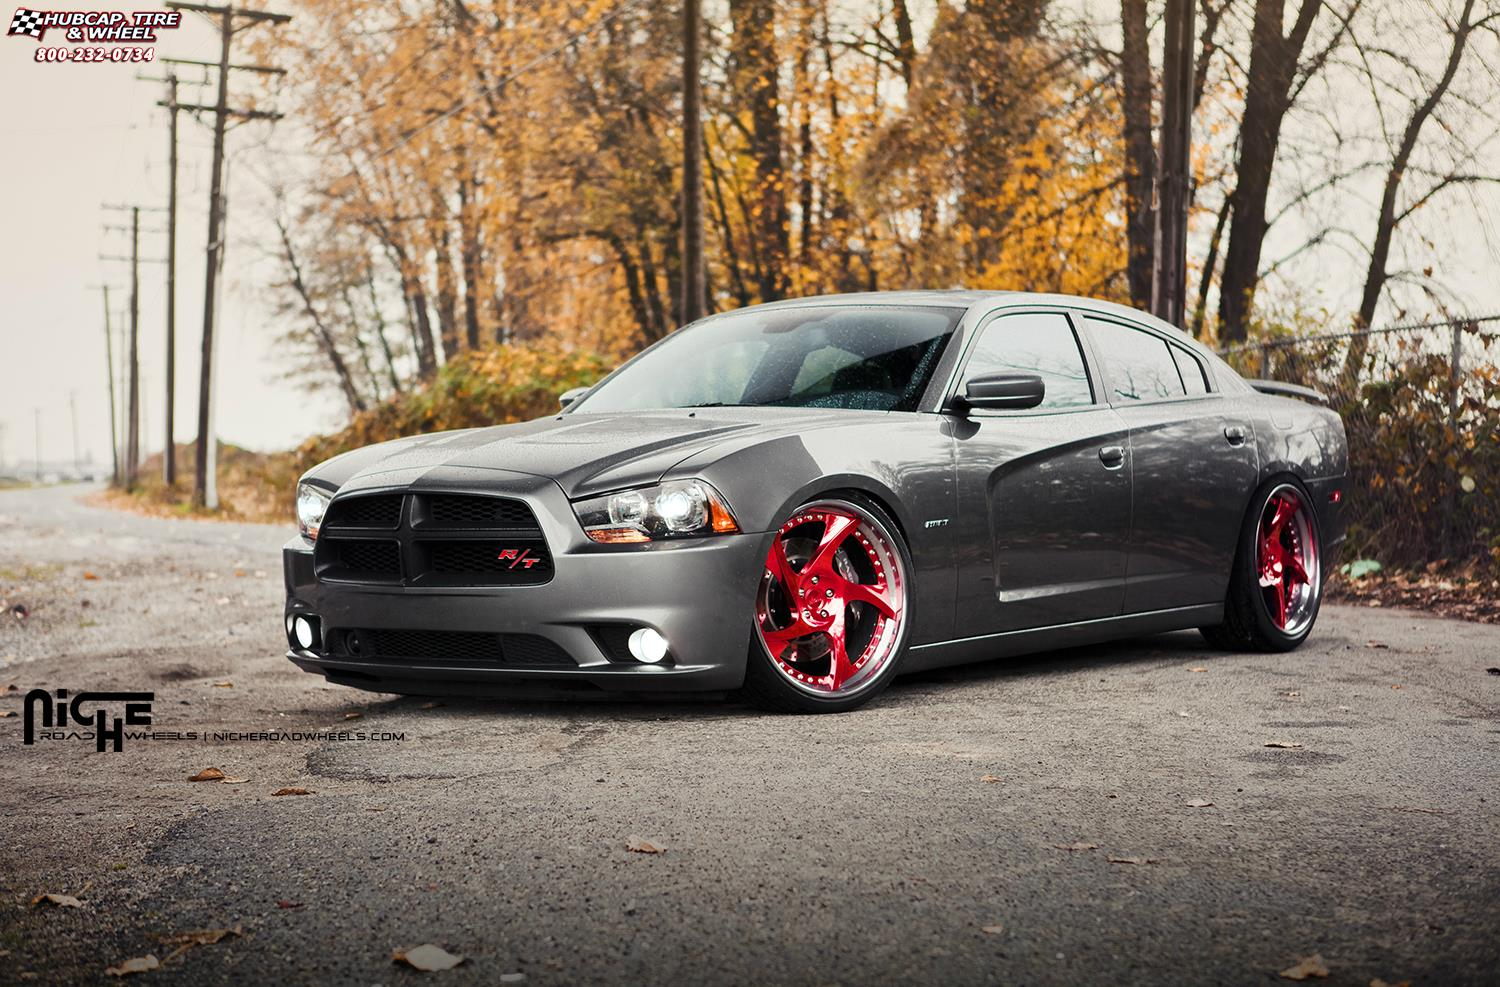 dodge charger niche scope wheels hi luster polish with candy apple tint gloss ddt. Black Bedroom Furniture Sets. Home Design Ideas